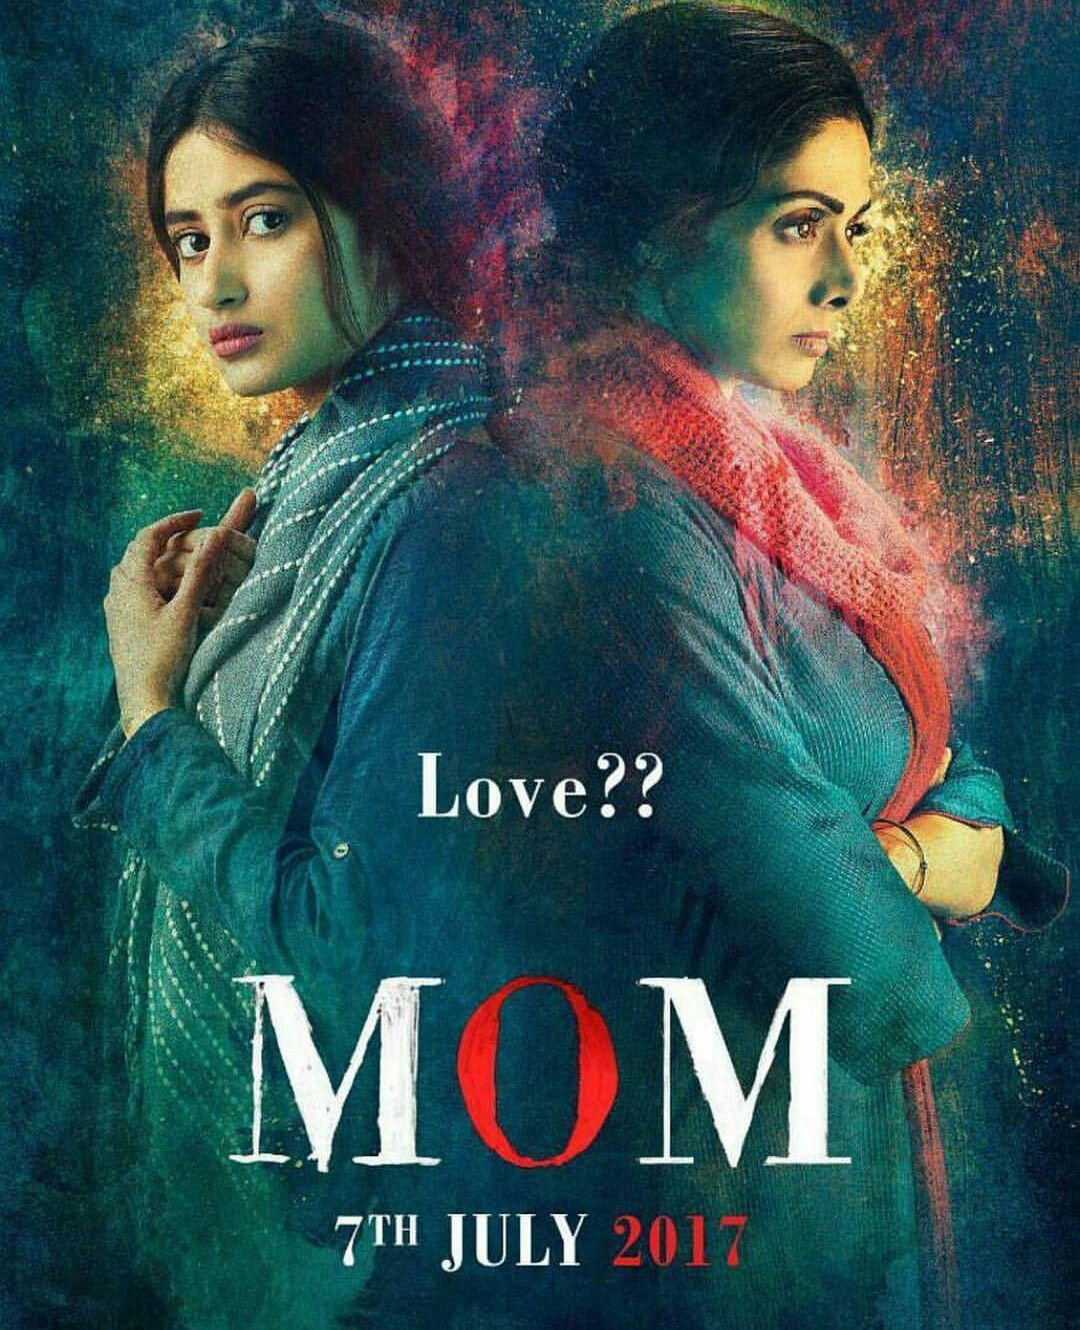 First Look at the Official Movie Poster of MOM Starring